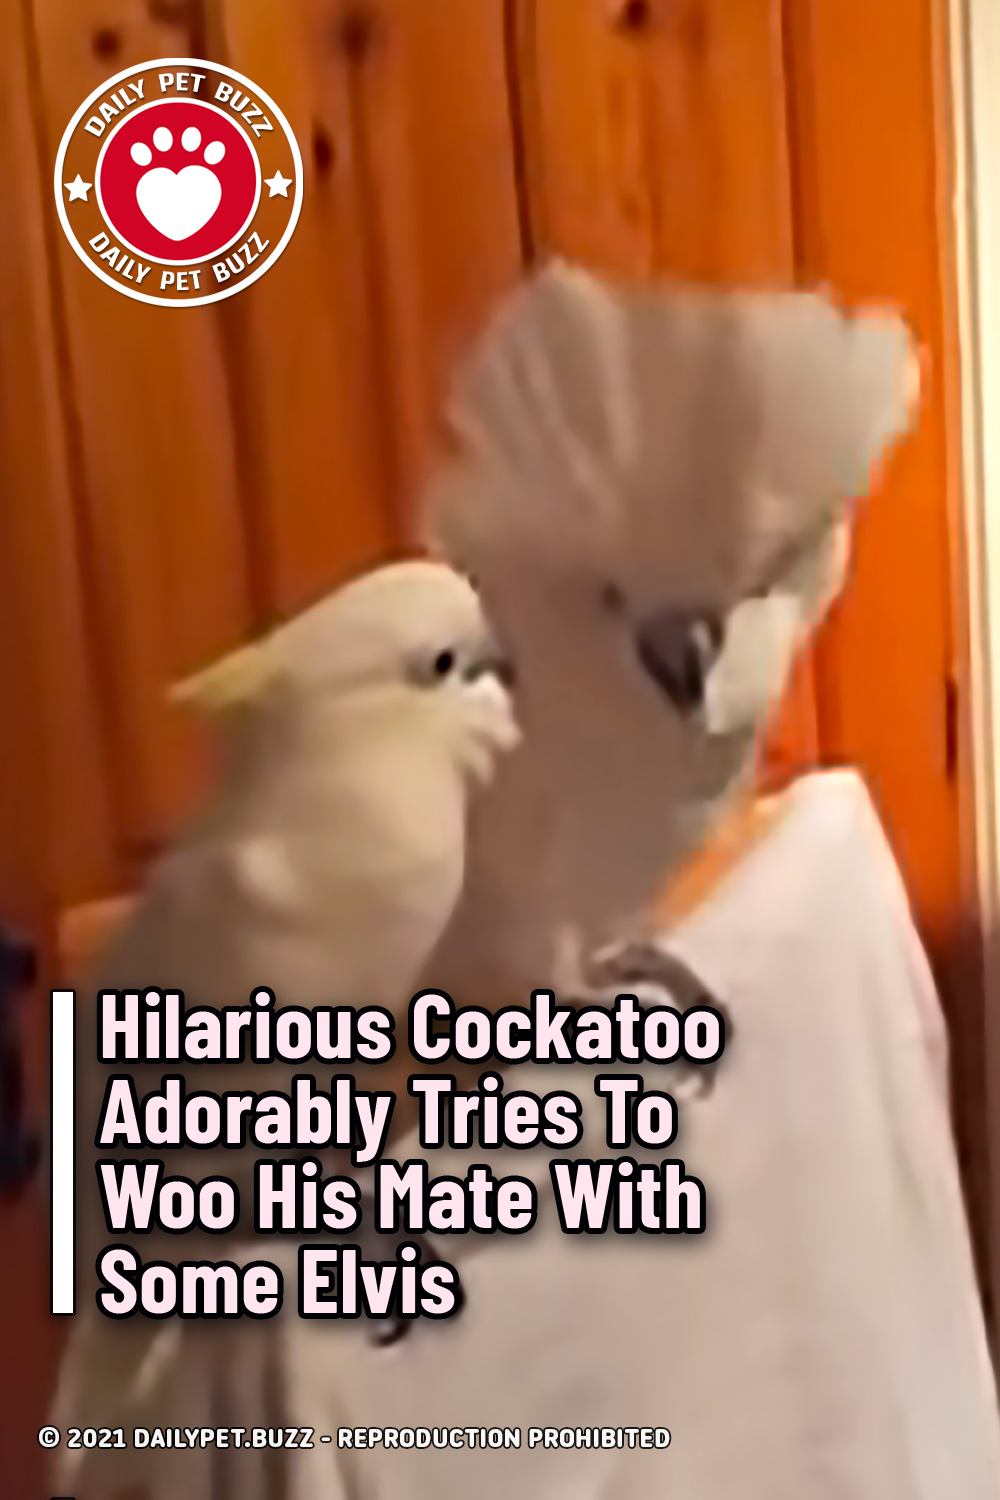 Hilarious Cockatoo Adorably Tries To Woo His Mate With Some Elvis